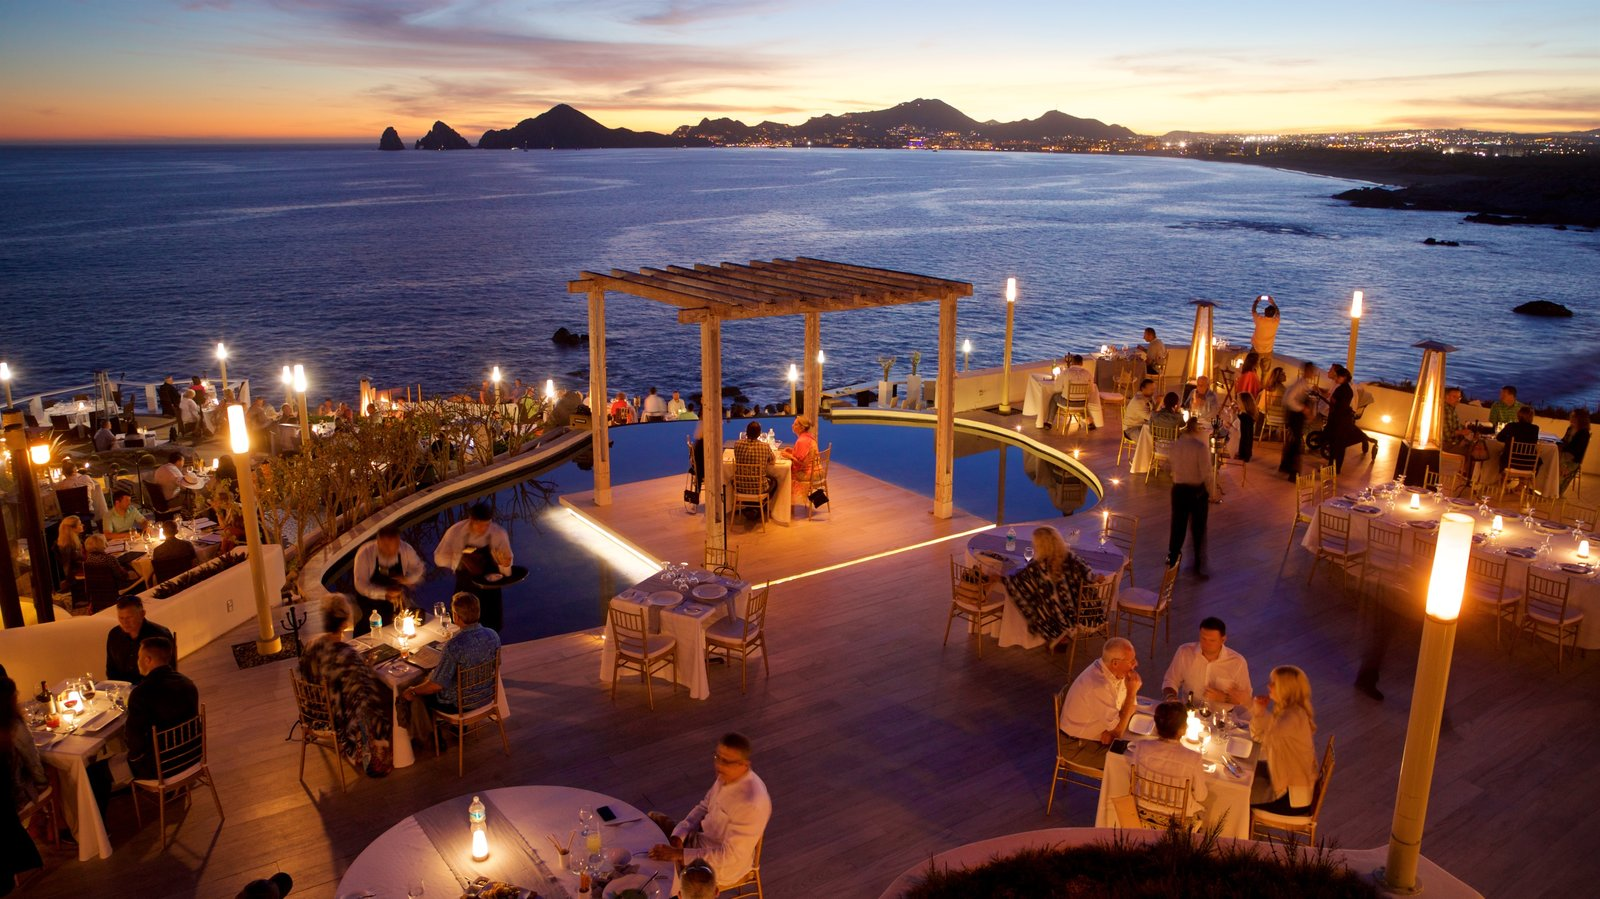 San Jose del Cabo showing dining out, night scenes and outdoor eating